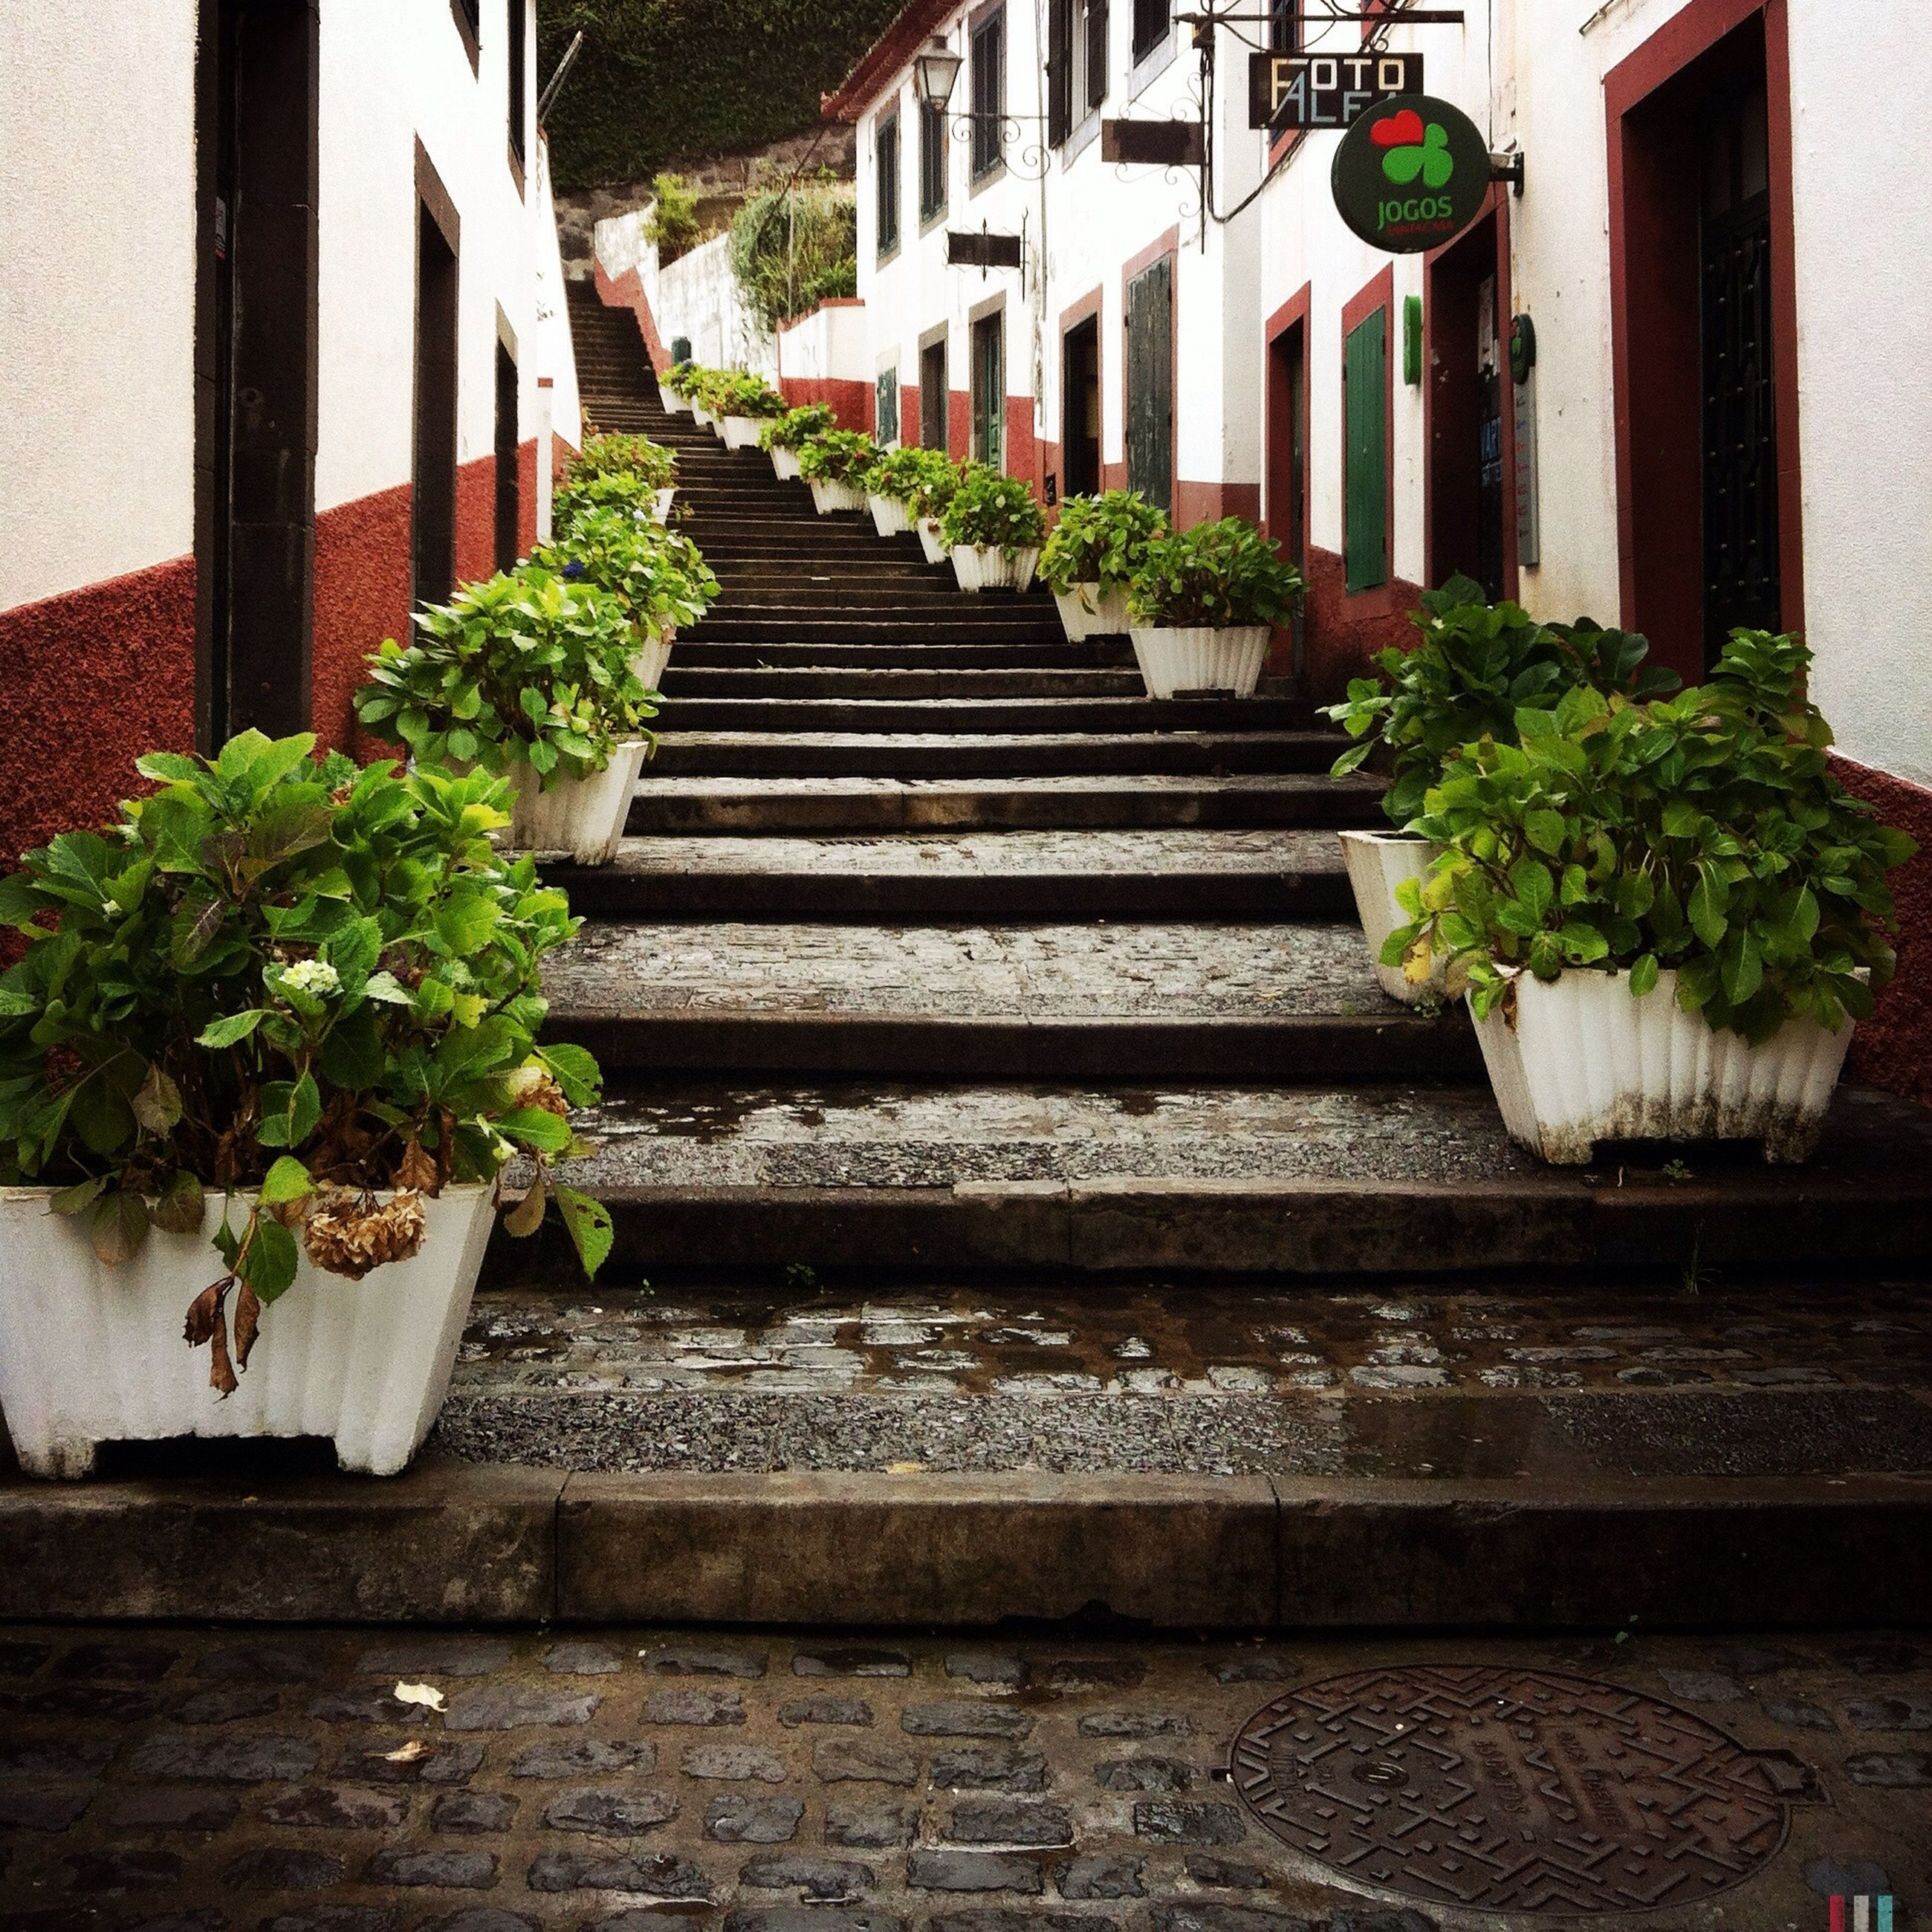 building exterior, architecture, built structure, plant, steps, potted plant, house, the way forward, residential structure, growth, steps and staircases, wall - building feature, residential building, staircase, leaf, wall, green color, outdoors, building, no people